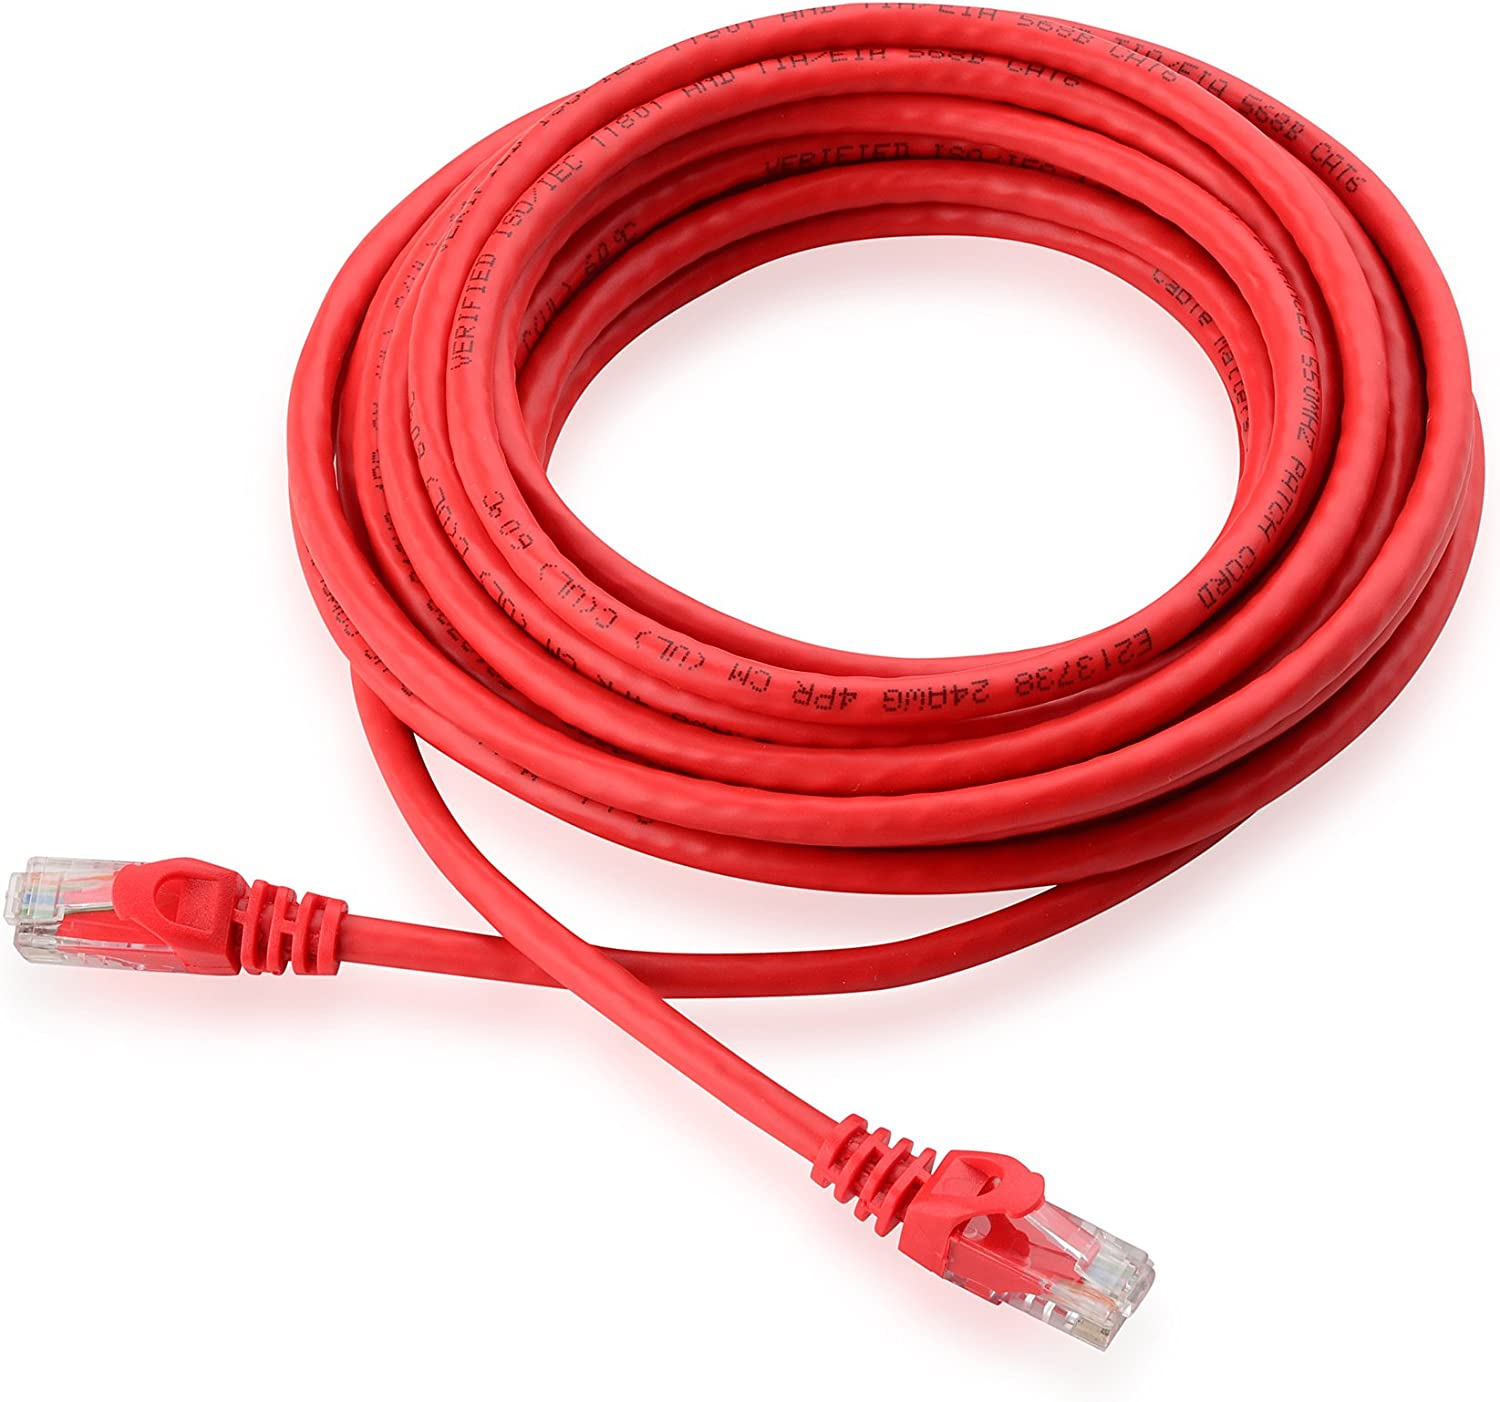 Cable Matters Snagless Cat6 Ethernet Cable (Cat6 Cable, Cat 6 Cable) in Black 25 ft: Computers & Accessories